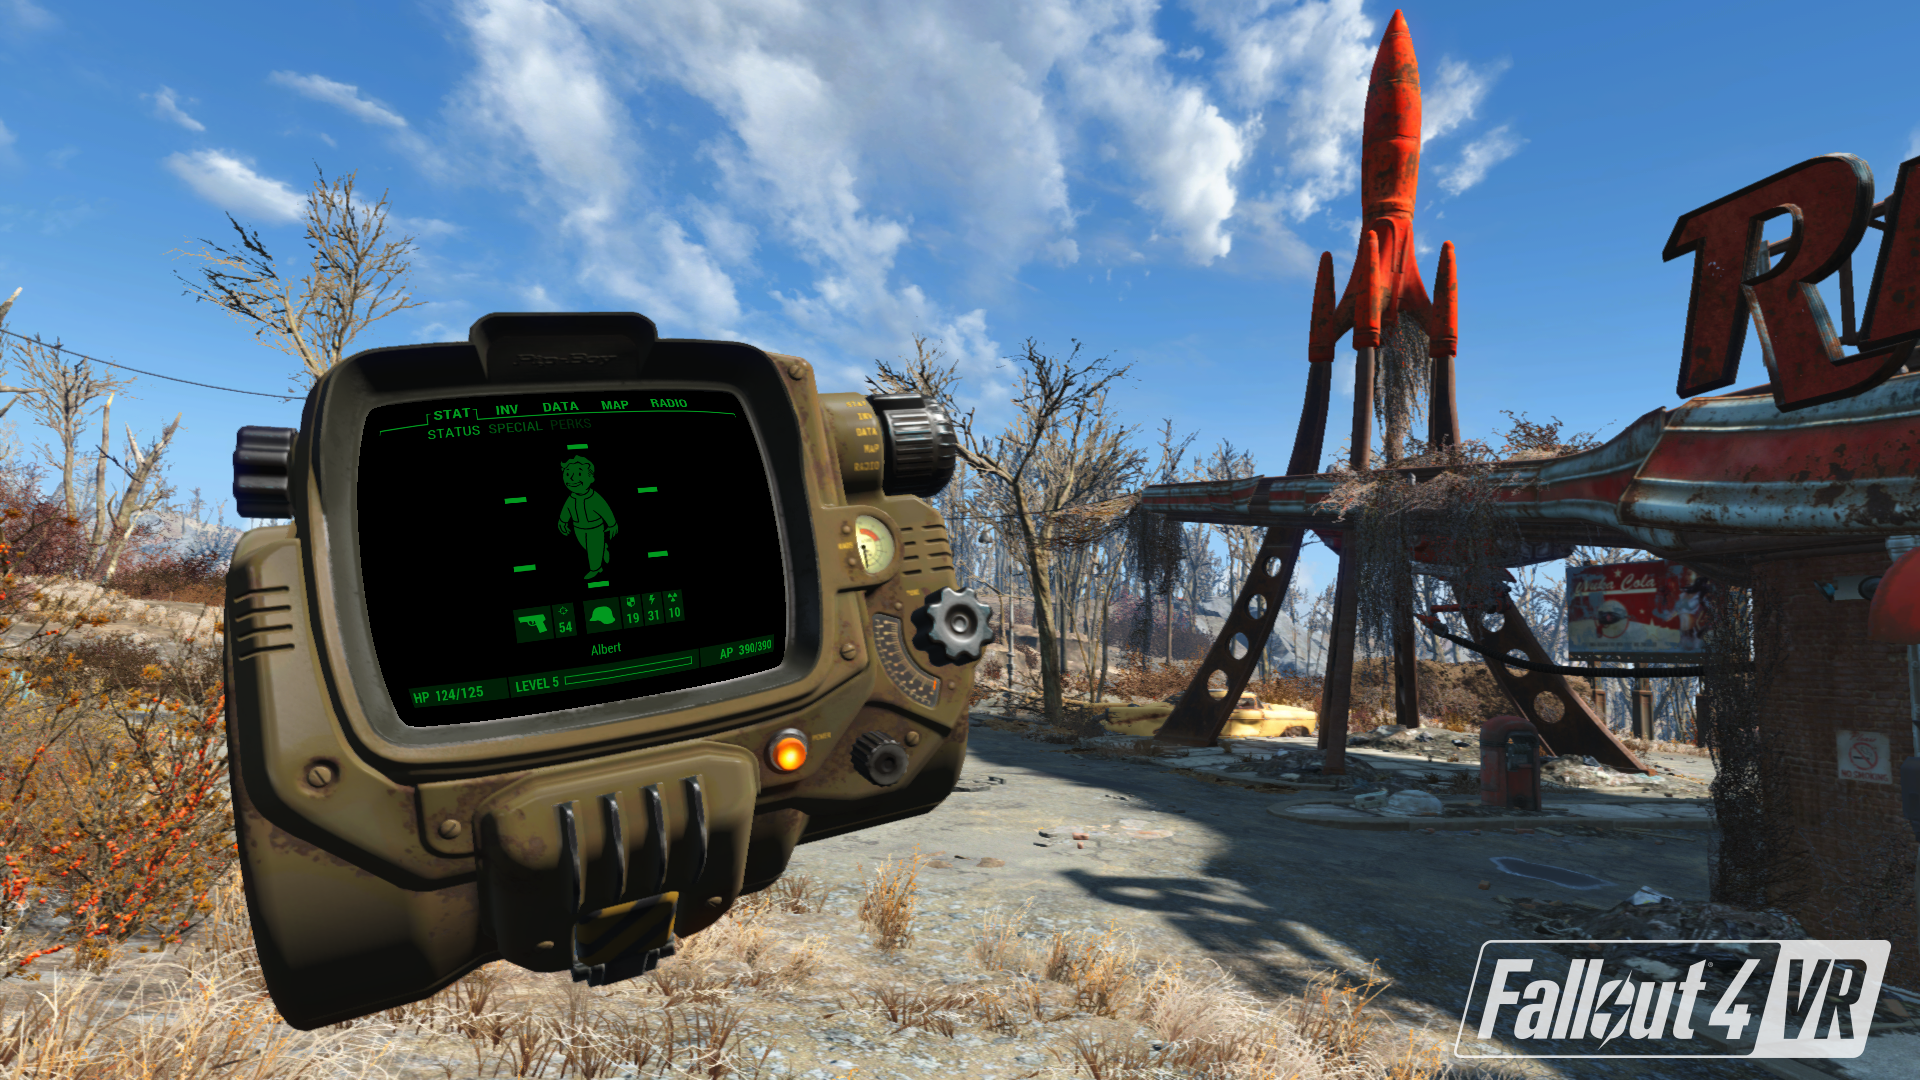 Fallout-4-VR (1).png